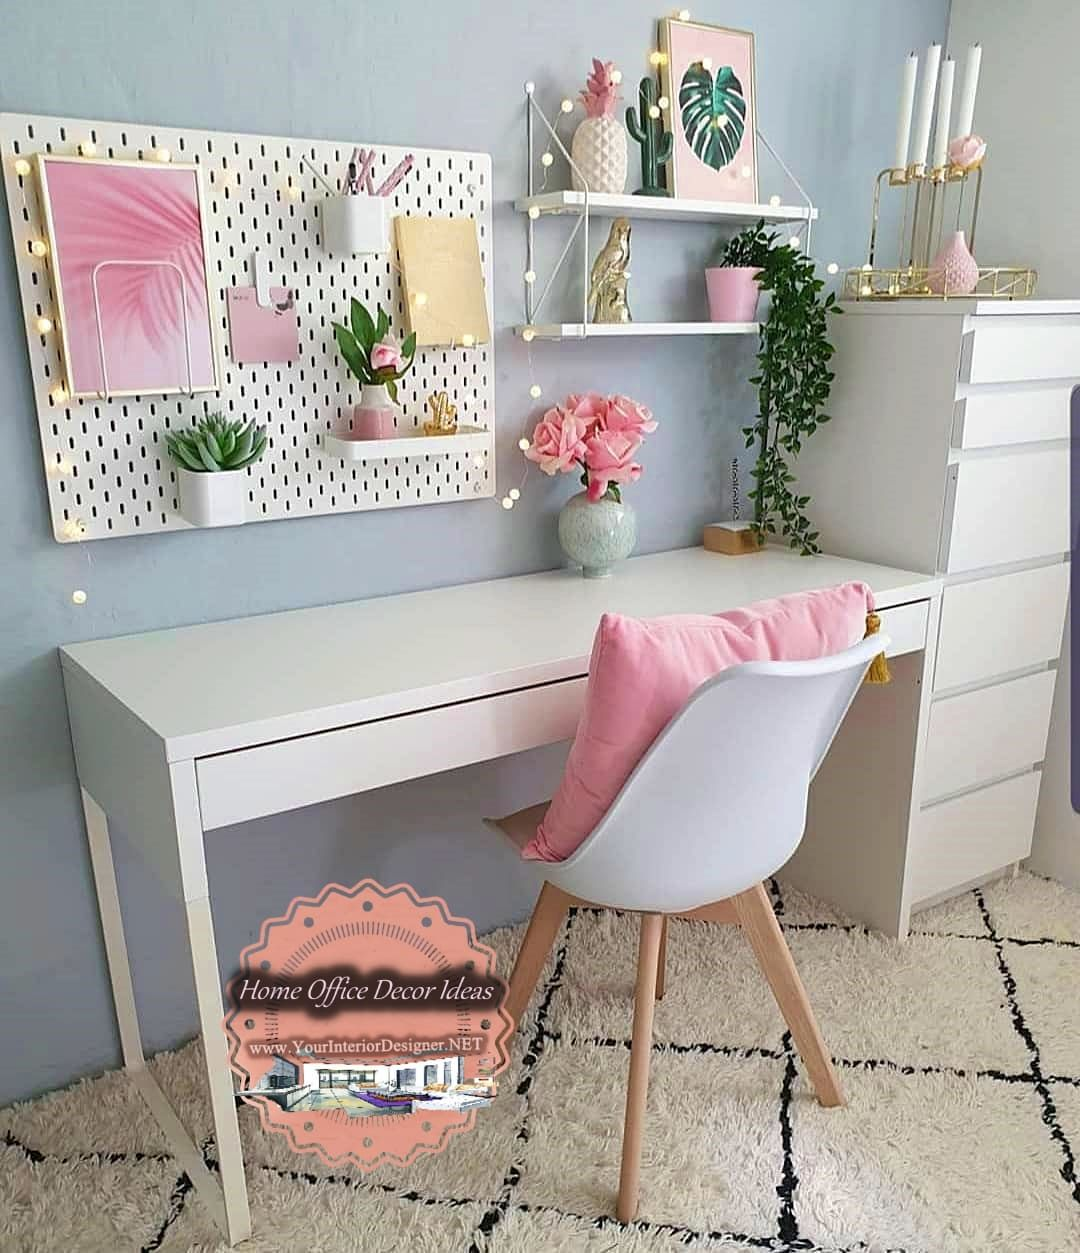 66 Unique Decor and Design Ideas For Home Office Workers